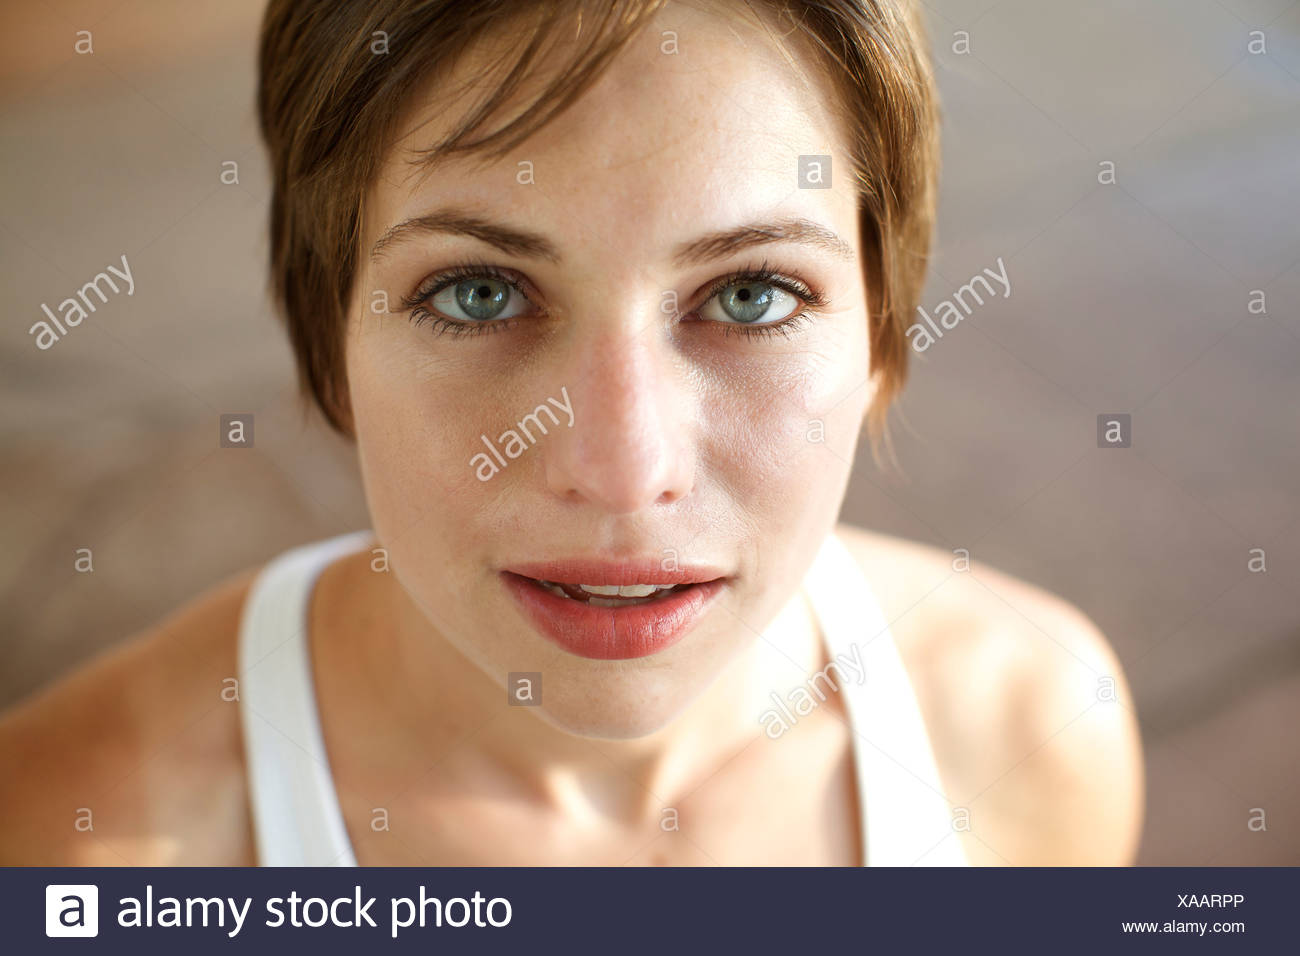 Portrait of a woman with short hair looks up at the camera with in San Diego, California. - Stock Image